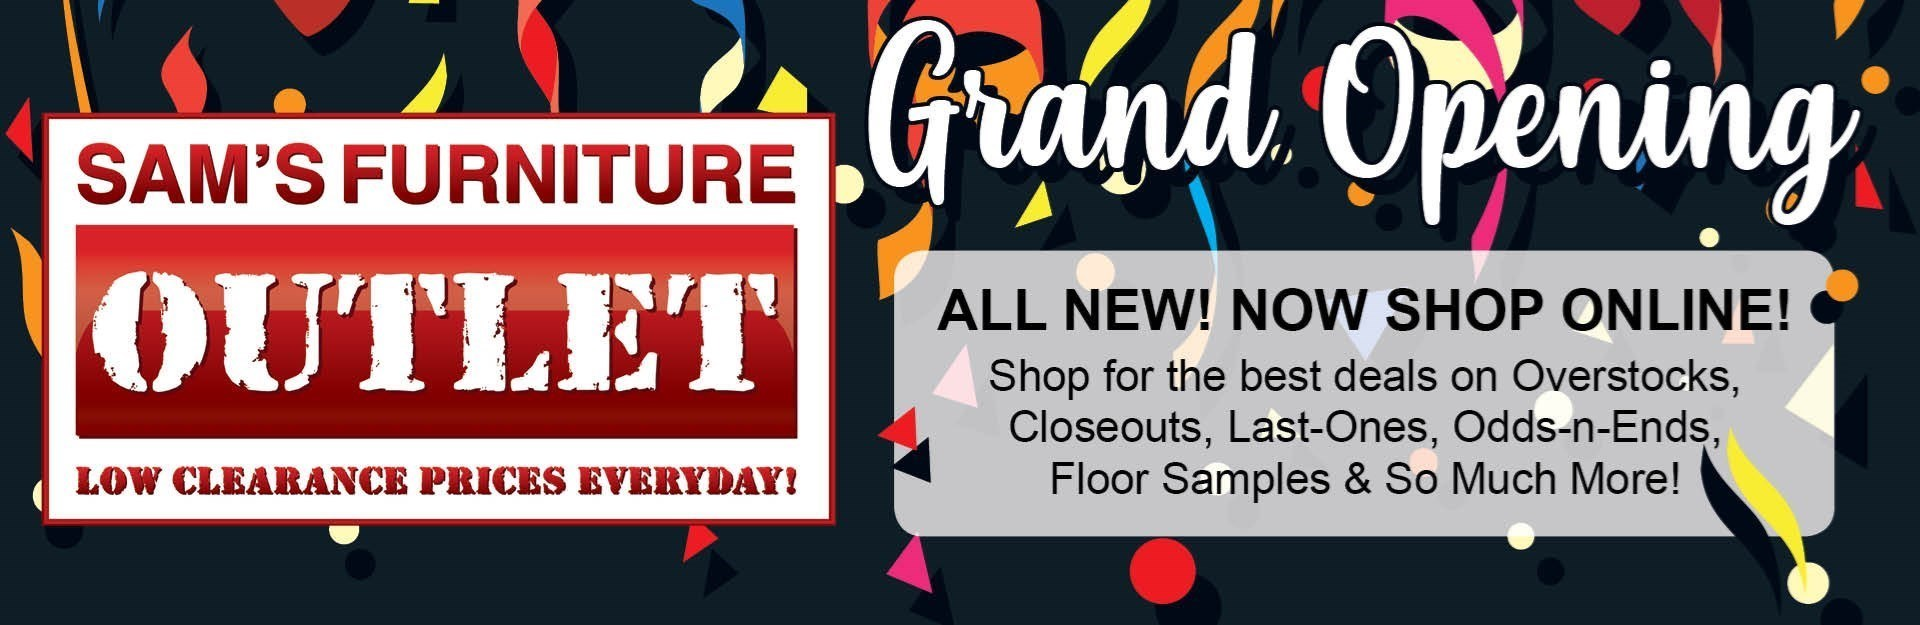 Grand Opening. All new! Now Shop Online! Shop for the best deals on Overstocks, Closeouts, Last-Ones, Odds-n-Ends, Floor Samples & So Much More!